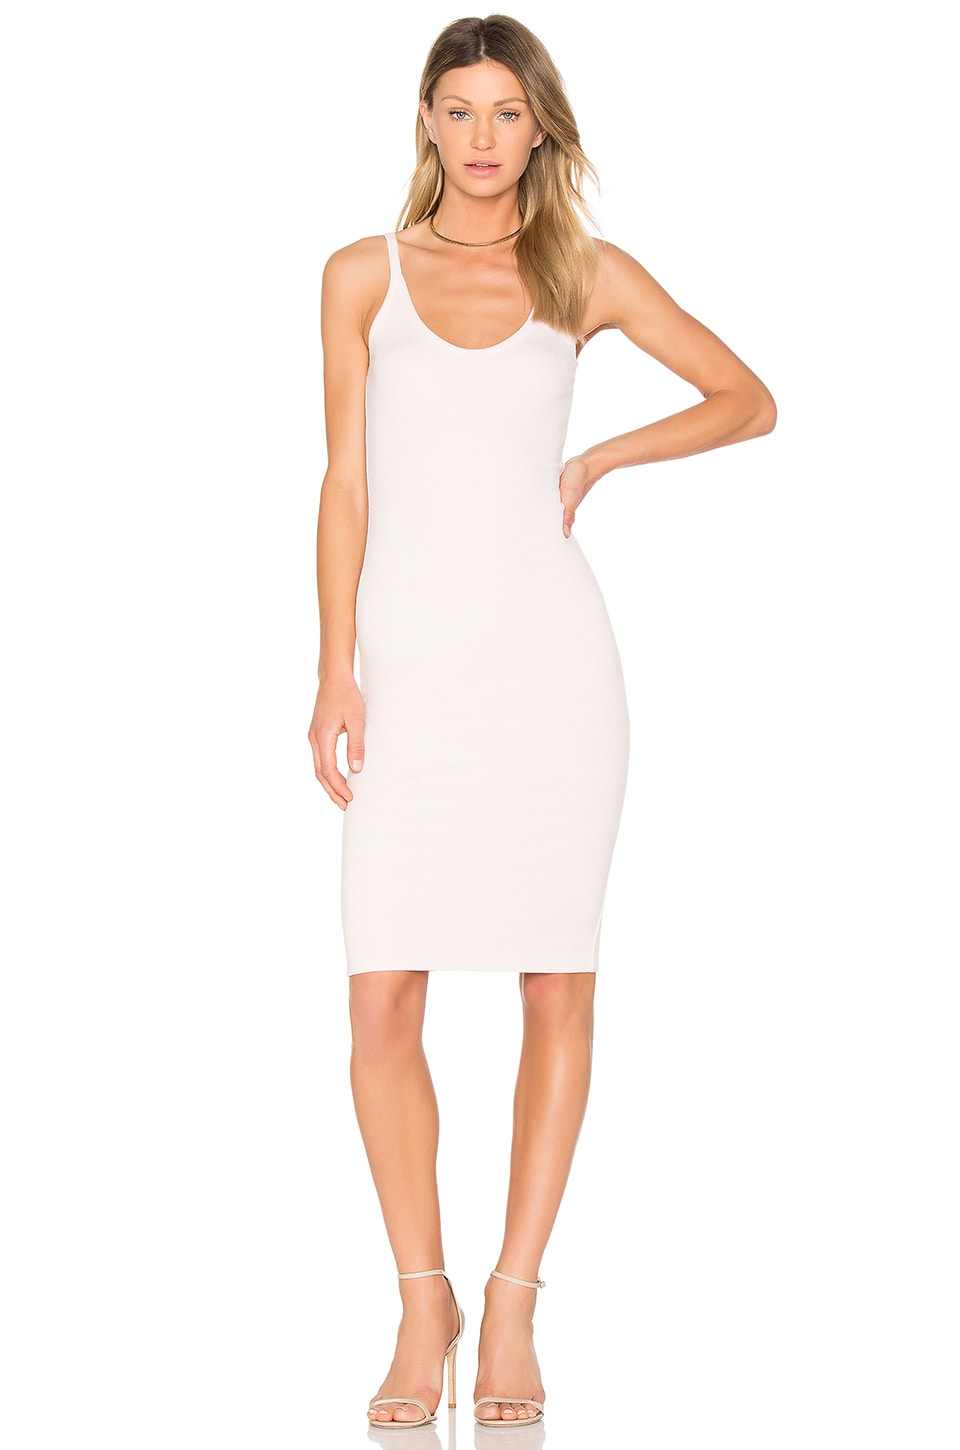 Modal Rib Dress by ATM Anthony Thomas Melillo